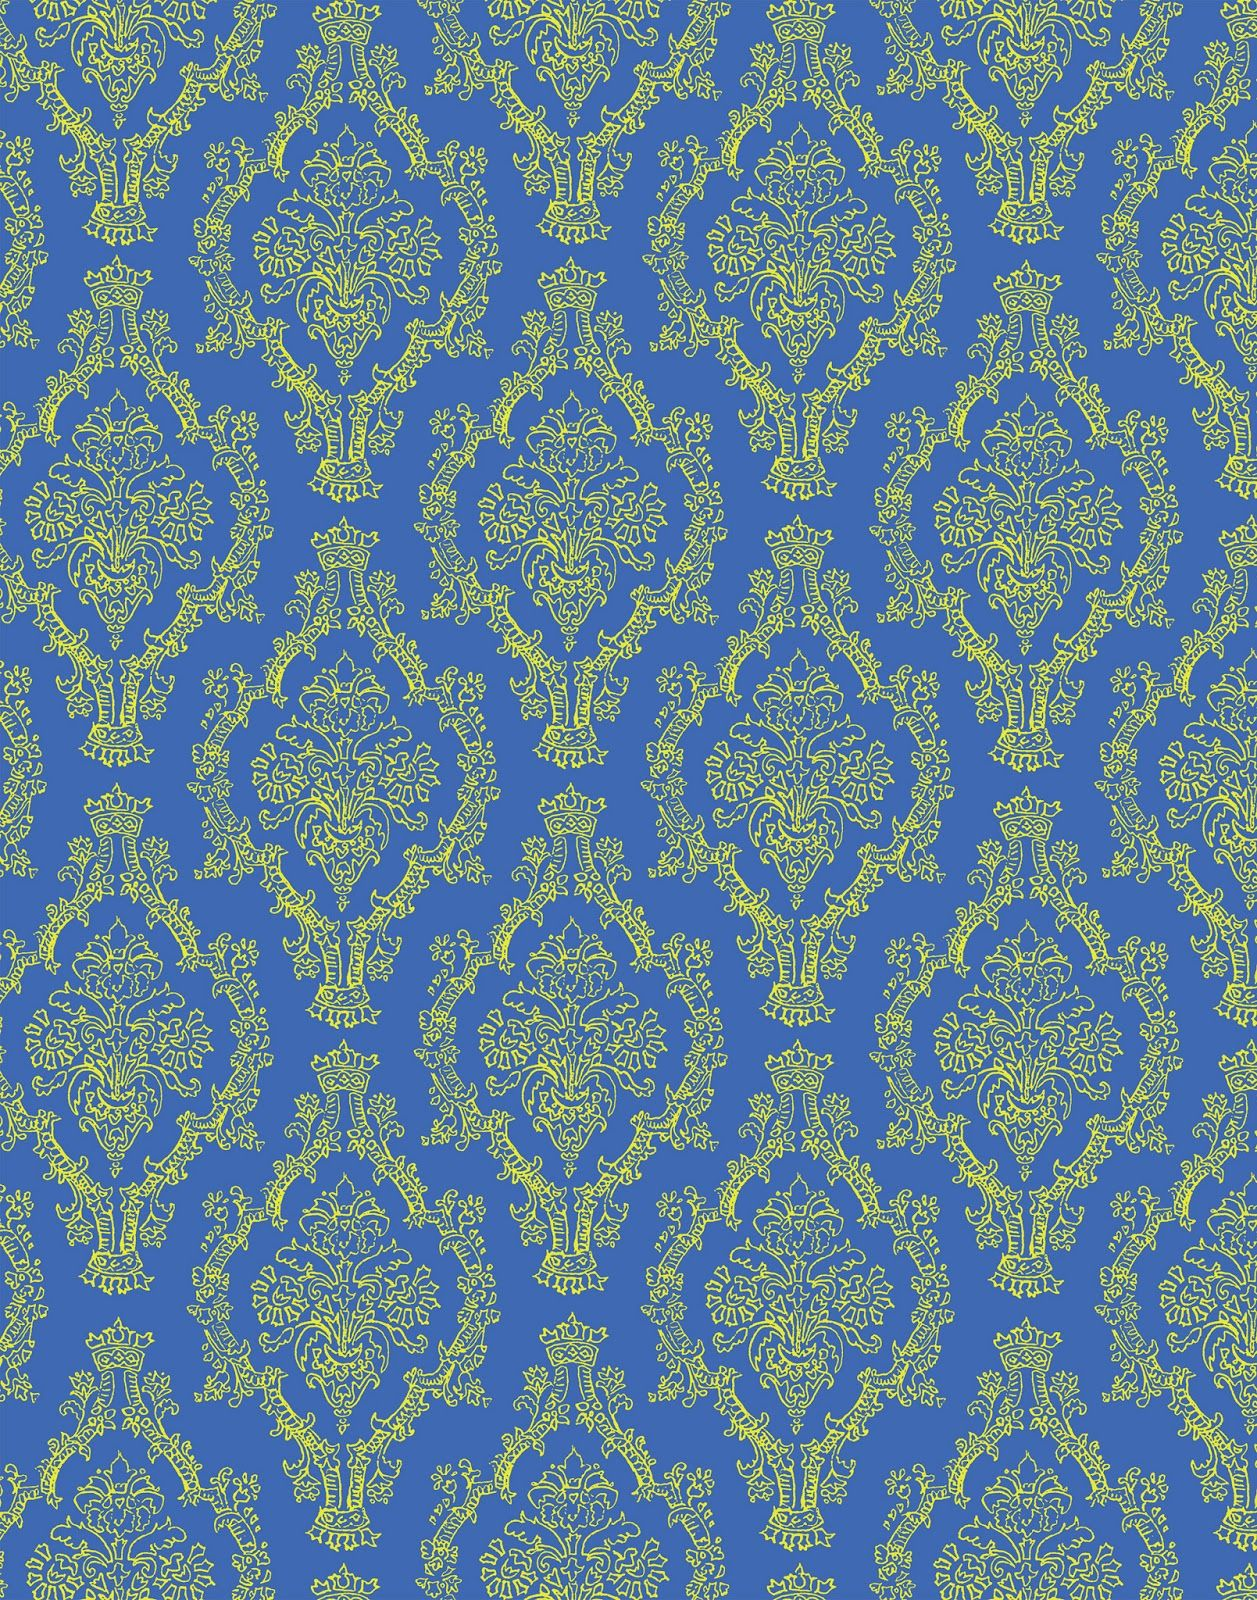 Royal Blue And Gold Wallpaper Coolstyle Wallpapers Com Blue And Gold Wallpaper Gold Wallpaper Royal Blue And Gold